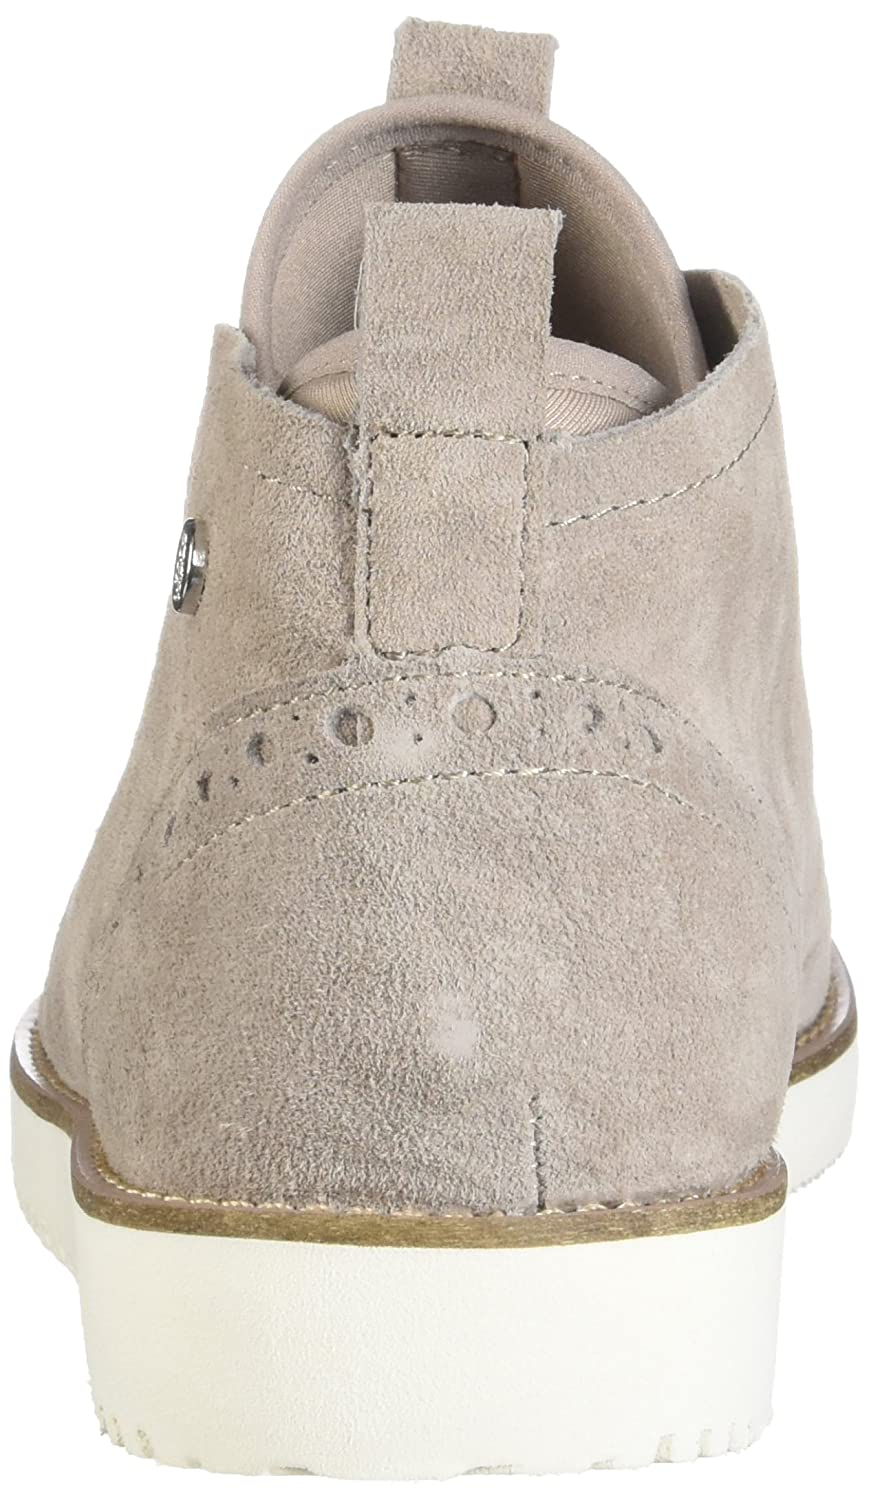 Hush Puppies Women's US|Ice Hw06267-405 B074KLVX3R 10 D US|Ice Women's Grey Suede 7a9a8a